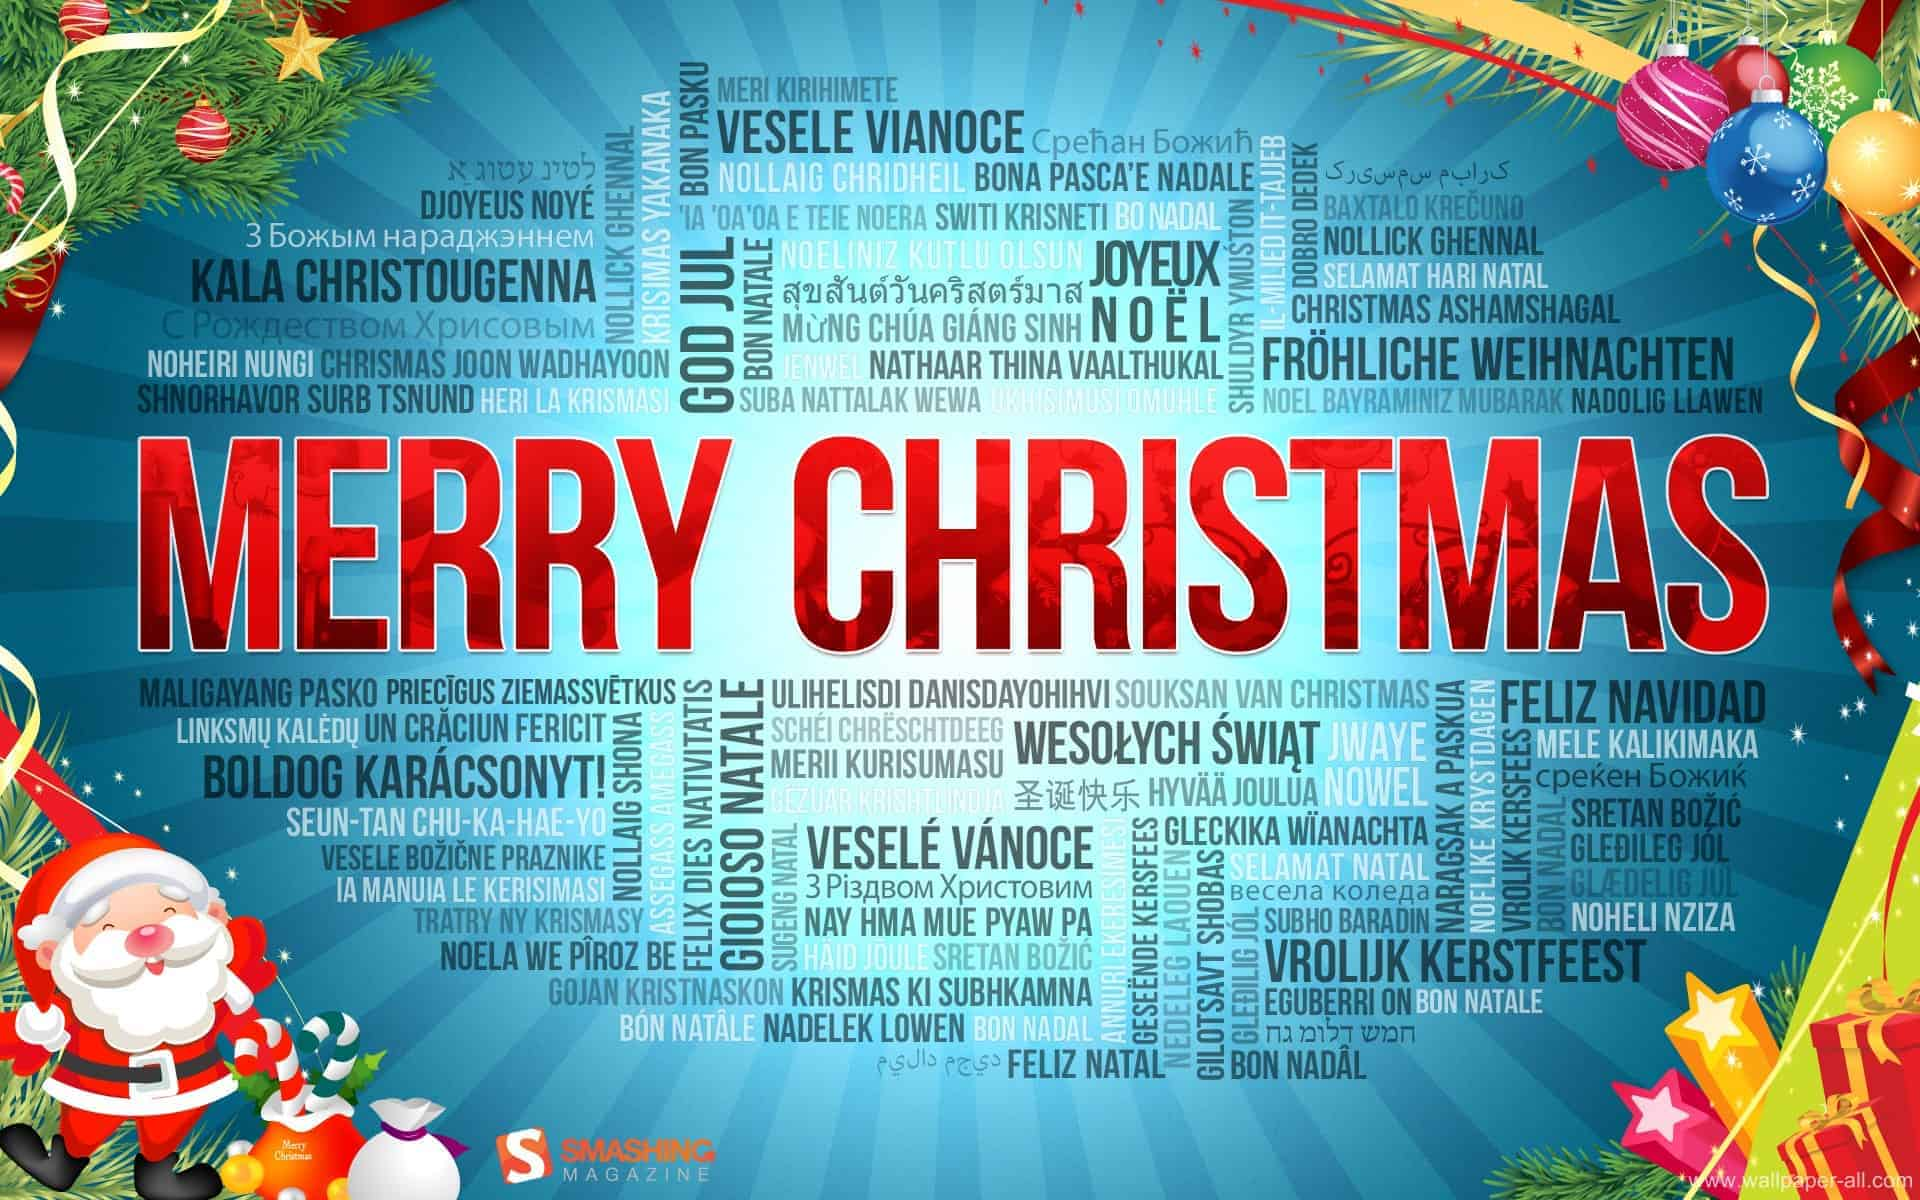 Merry christmas and happy new year in many languages terminology merry christmas in different languages m4hsunfo